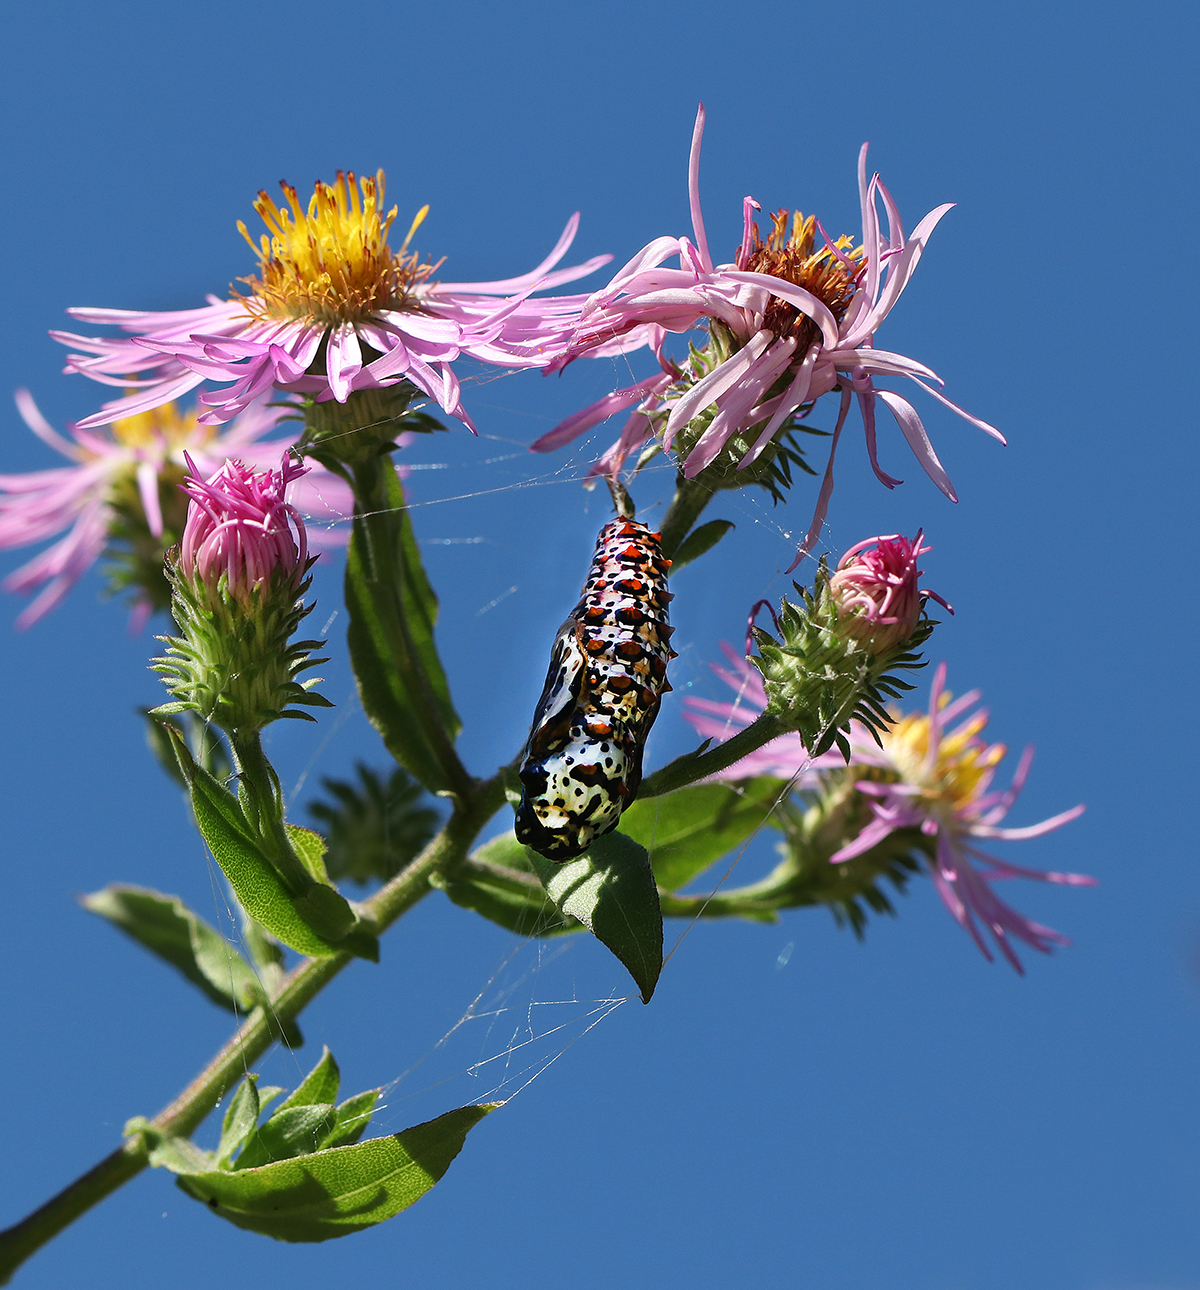 Variegated fritillary chrysalis on climbing aster in mid-October